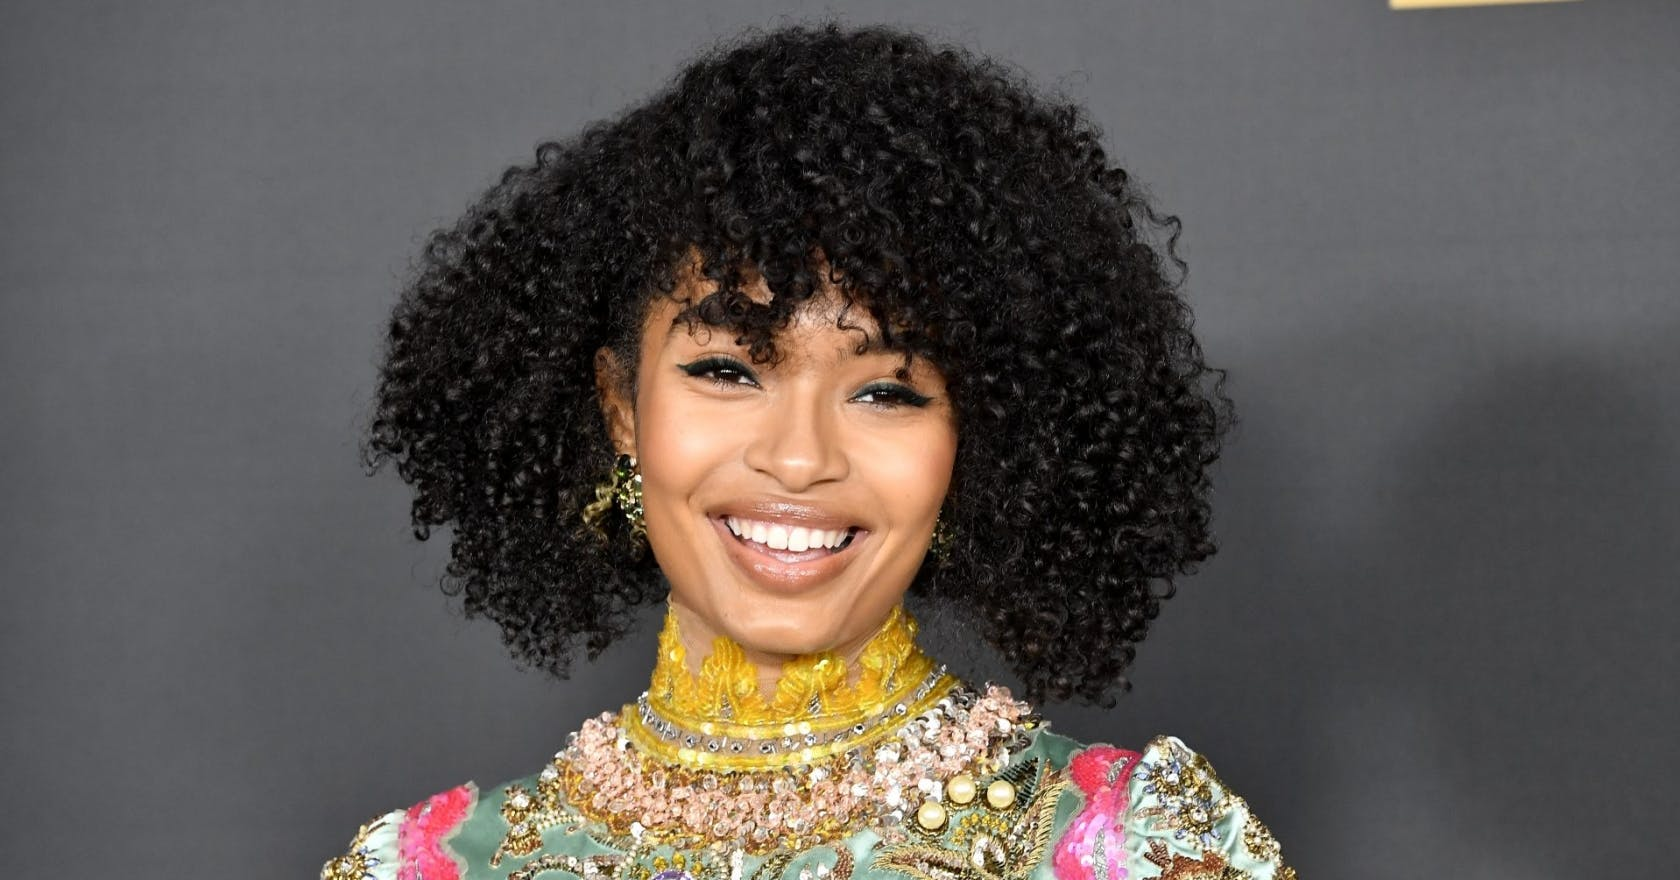 Yara Shahidi has been cast as Disney's first Black Tinkerbell, and we're obsessed